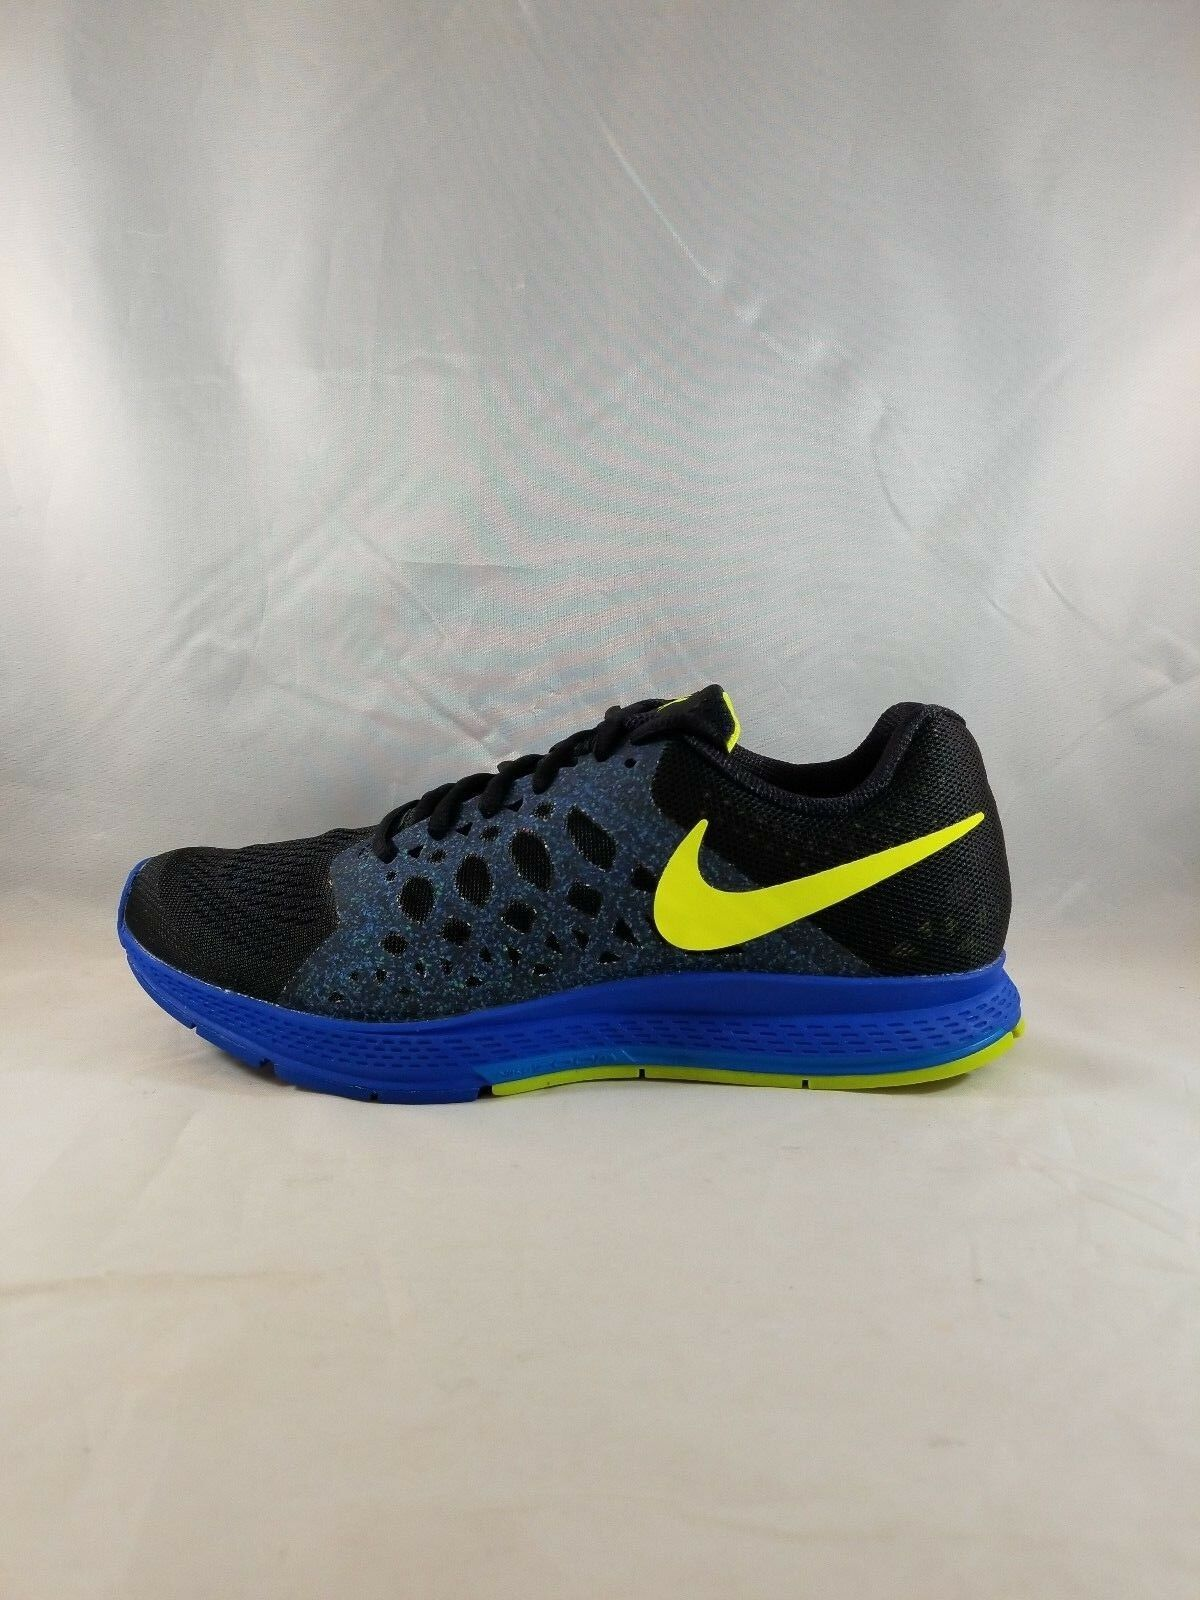 Nike Air Zoom Pegasus 31 Men's Running shoes 652925 002 Size 7